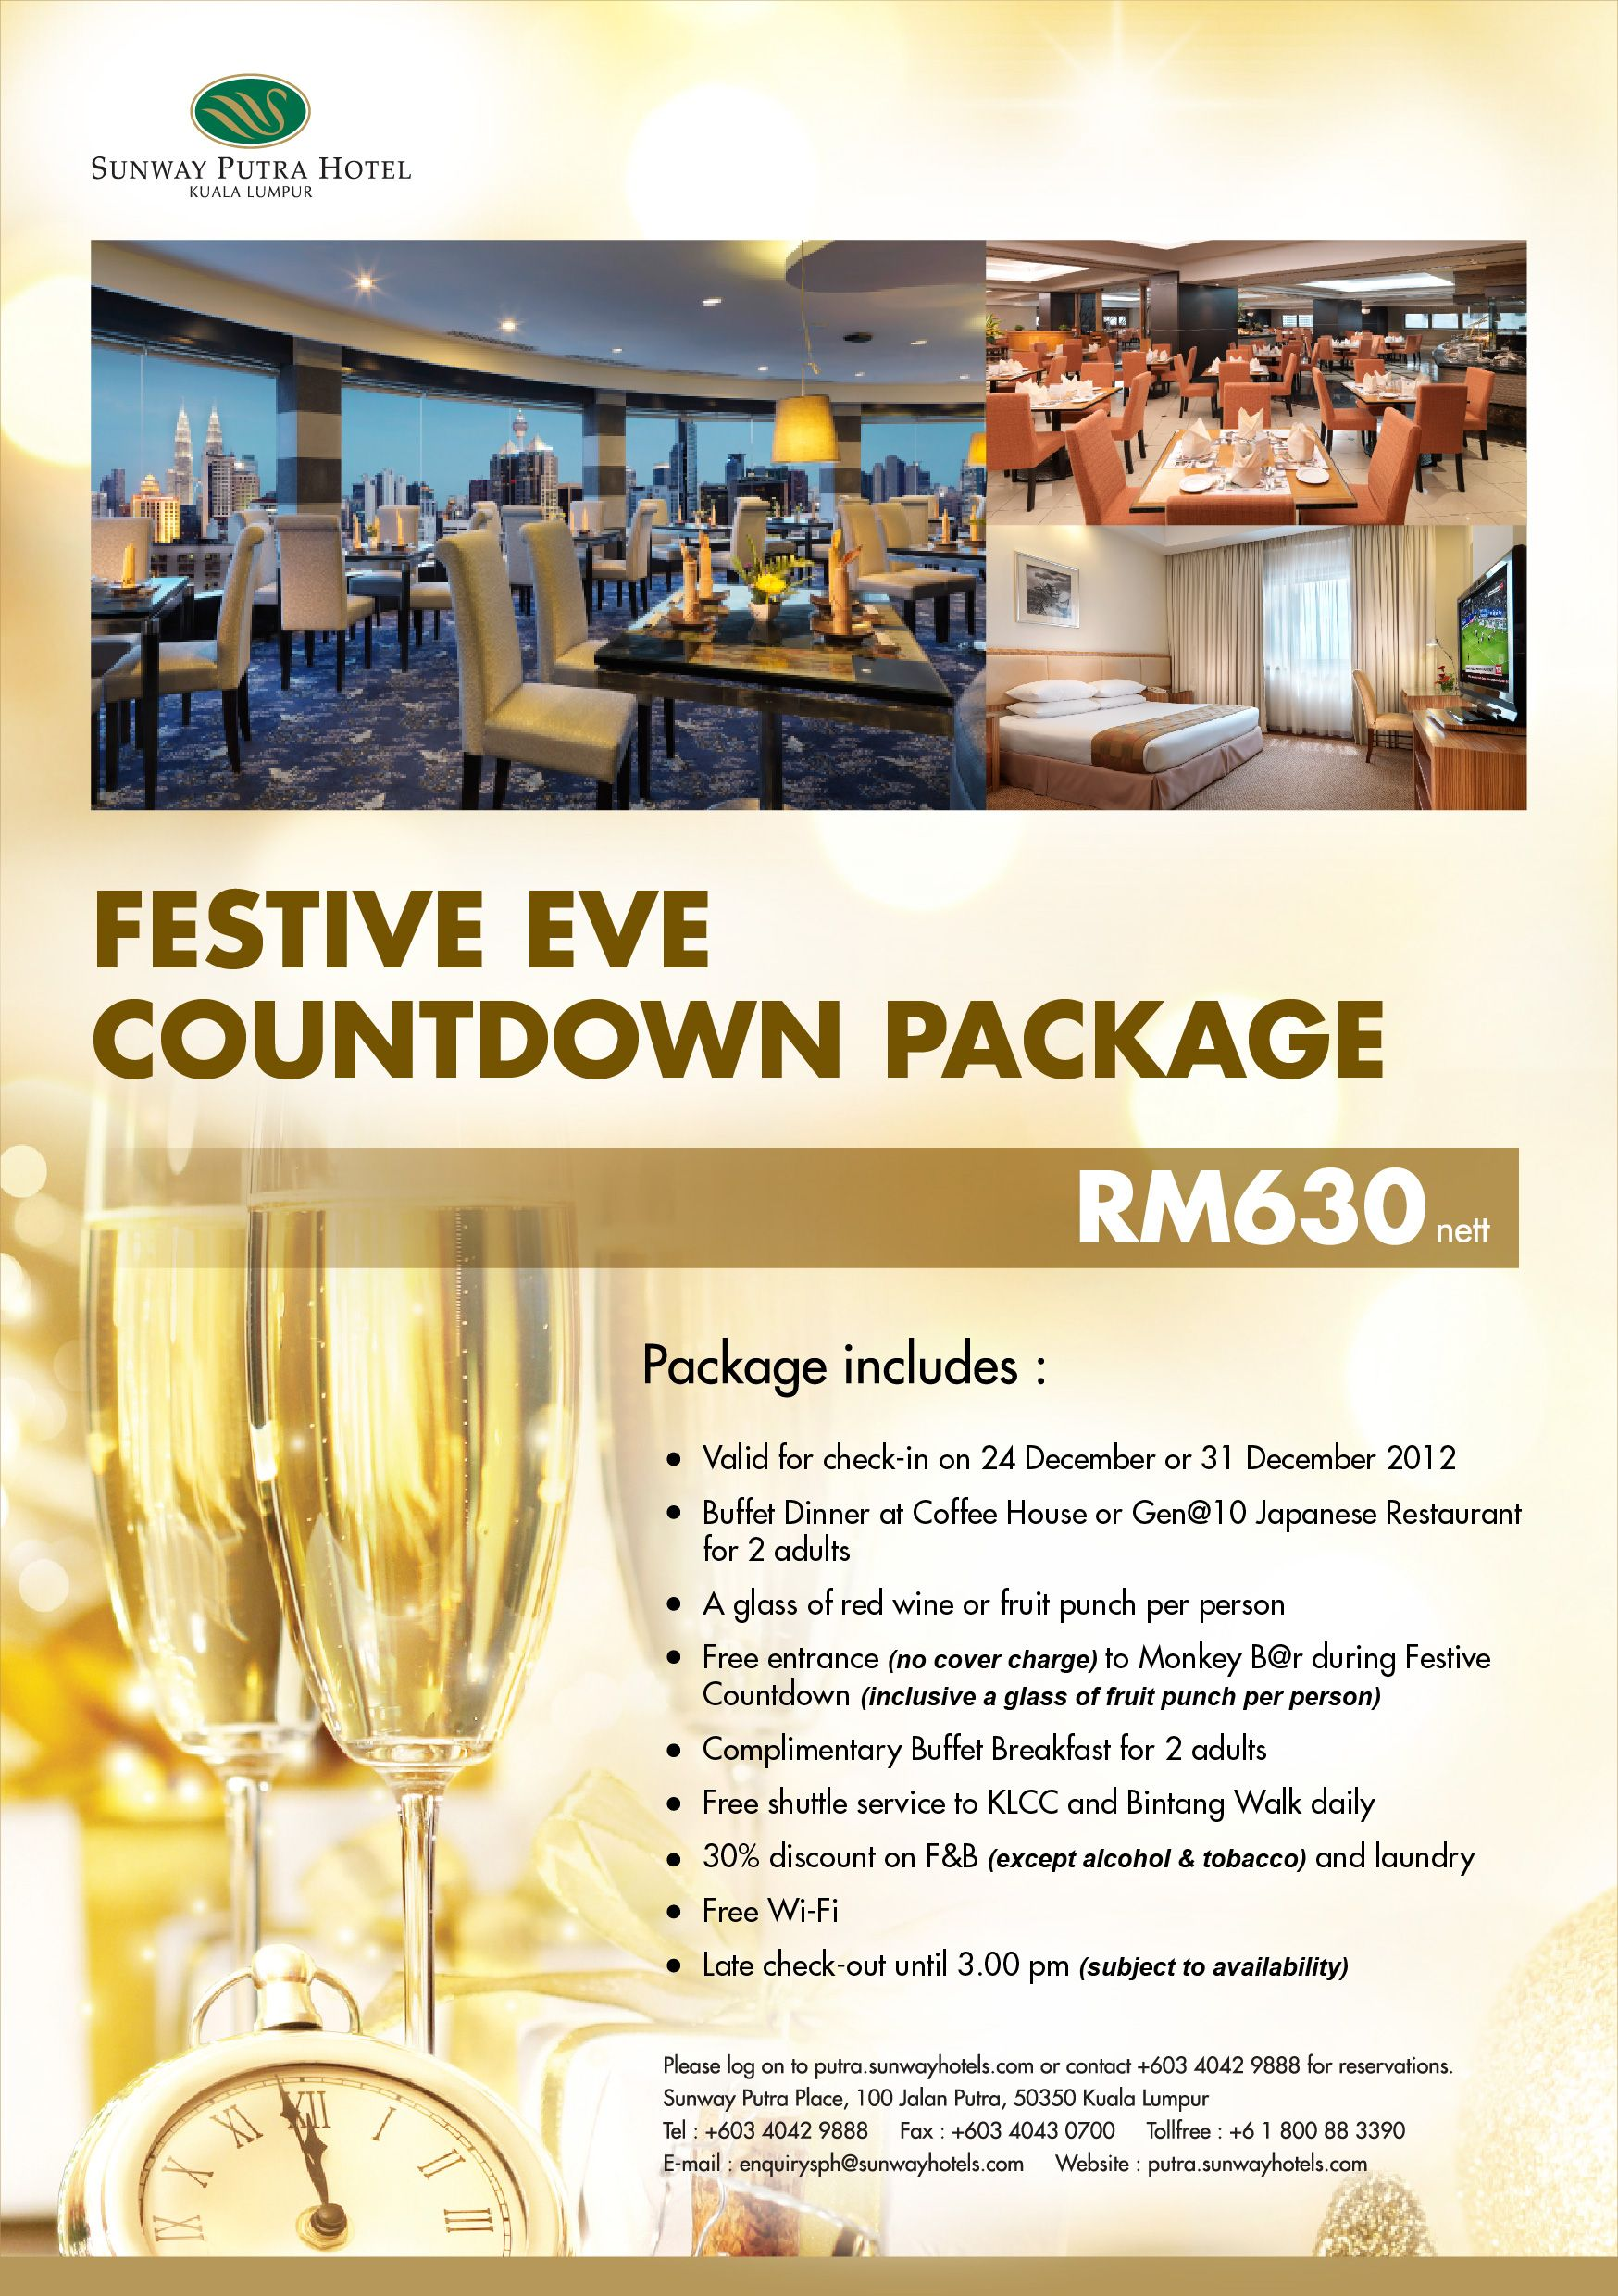 Fabulous Celebrate Christmas Or New Year Eve With Your Loved Ones In Sunway Putra Hotel Stay In Our Deluxe Room Enjo Japanese Restaurant Fruit Punch Buffet